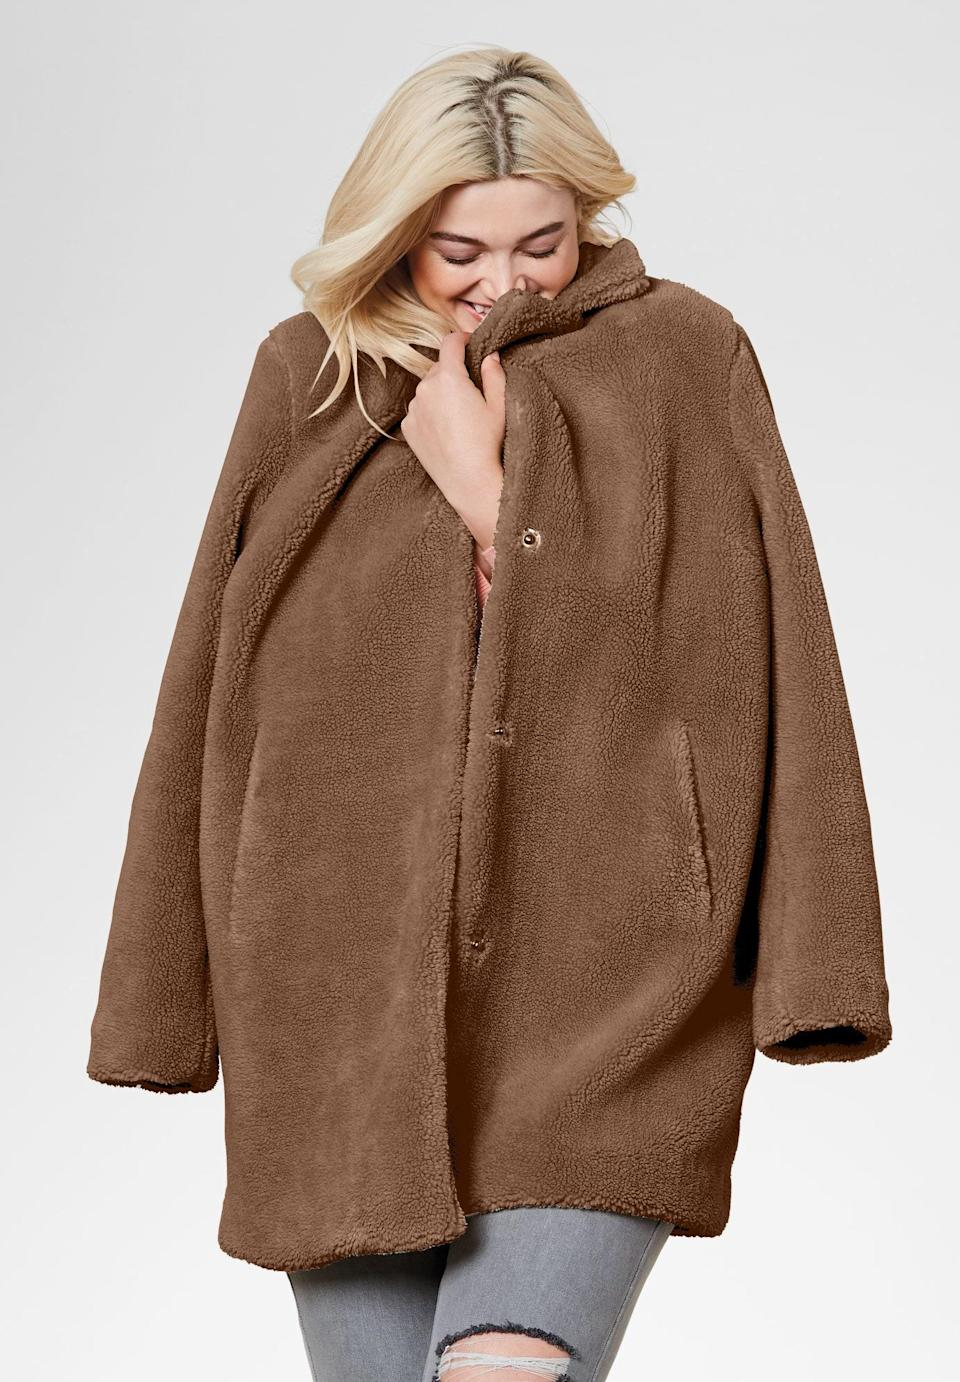 """Teddy coats are beloved because they'll make you look like the model in this photo: cozy, cute, and wildly pleased at looking so cozy and so cute. $60, Amazon. <a href=""""https://amzn.to/31q0hjJ"""" rel=""""nofollow noopener"""" target=""""_blank"""" data-ylk=""""slk:Get it now!"""" class=""""link rapid-noclick-resp"""">Get it now!</a>"""